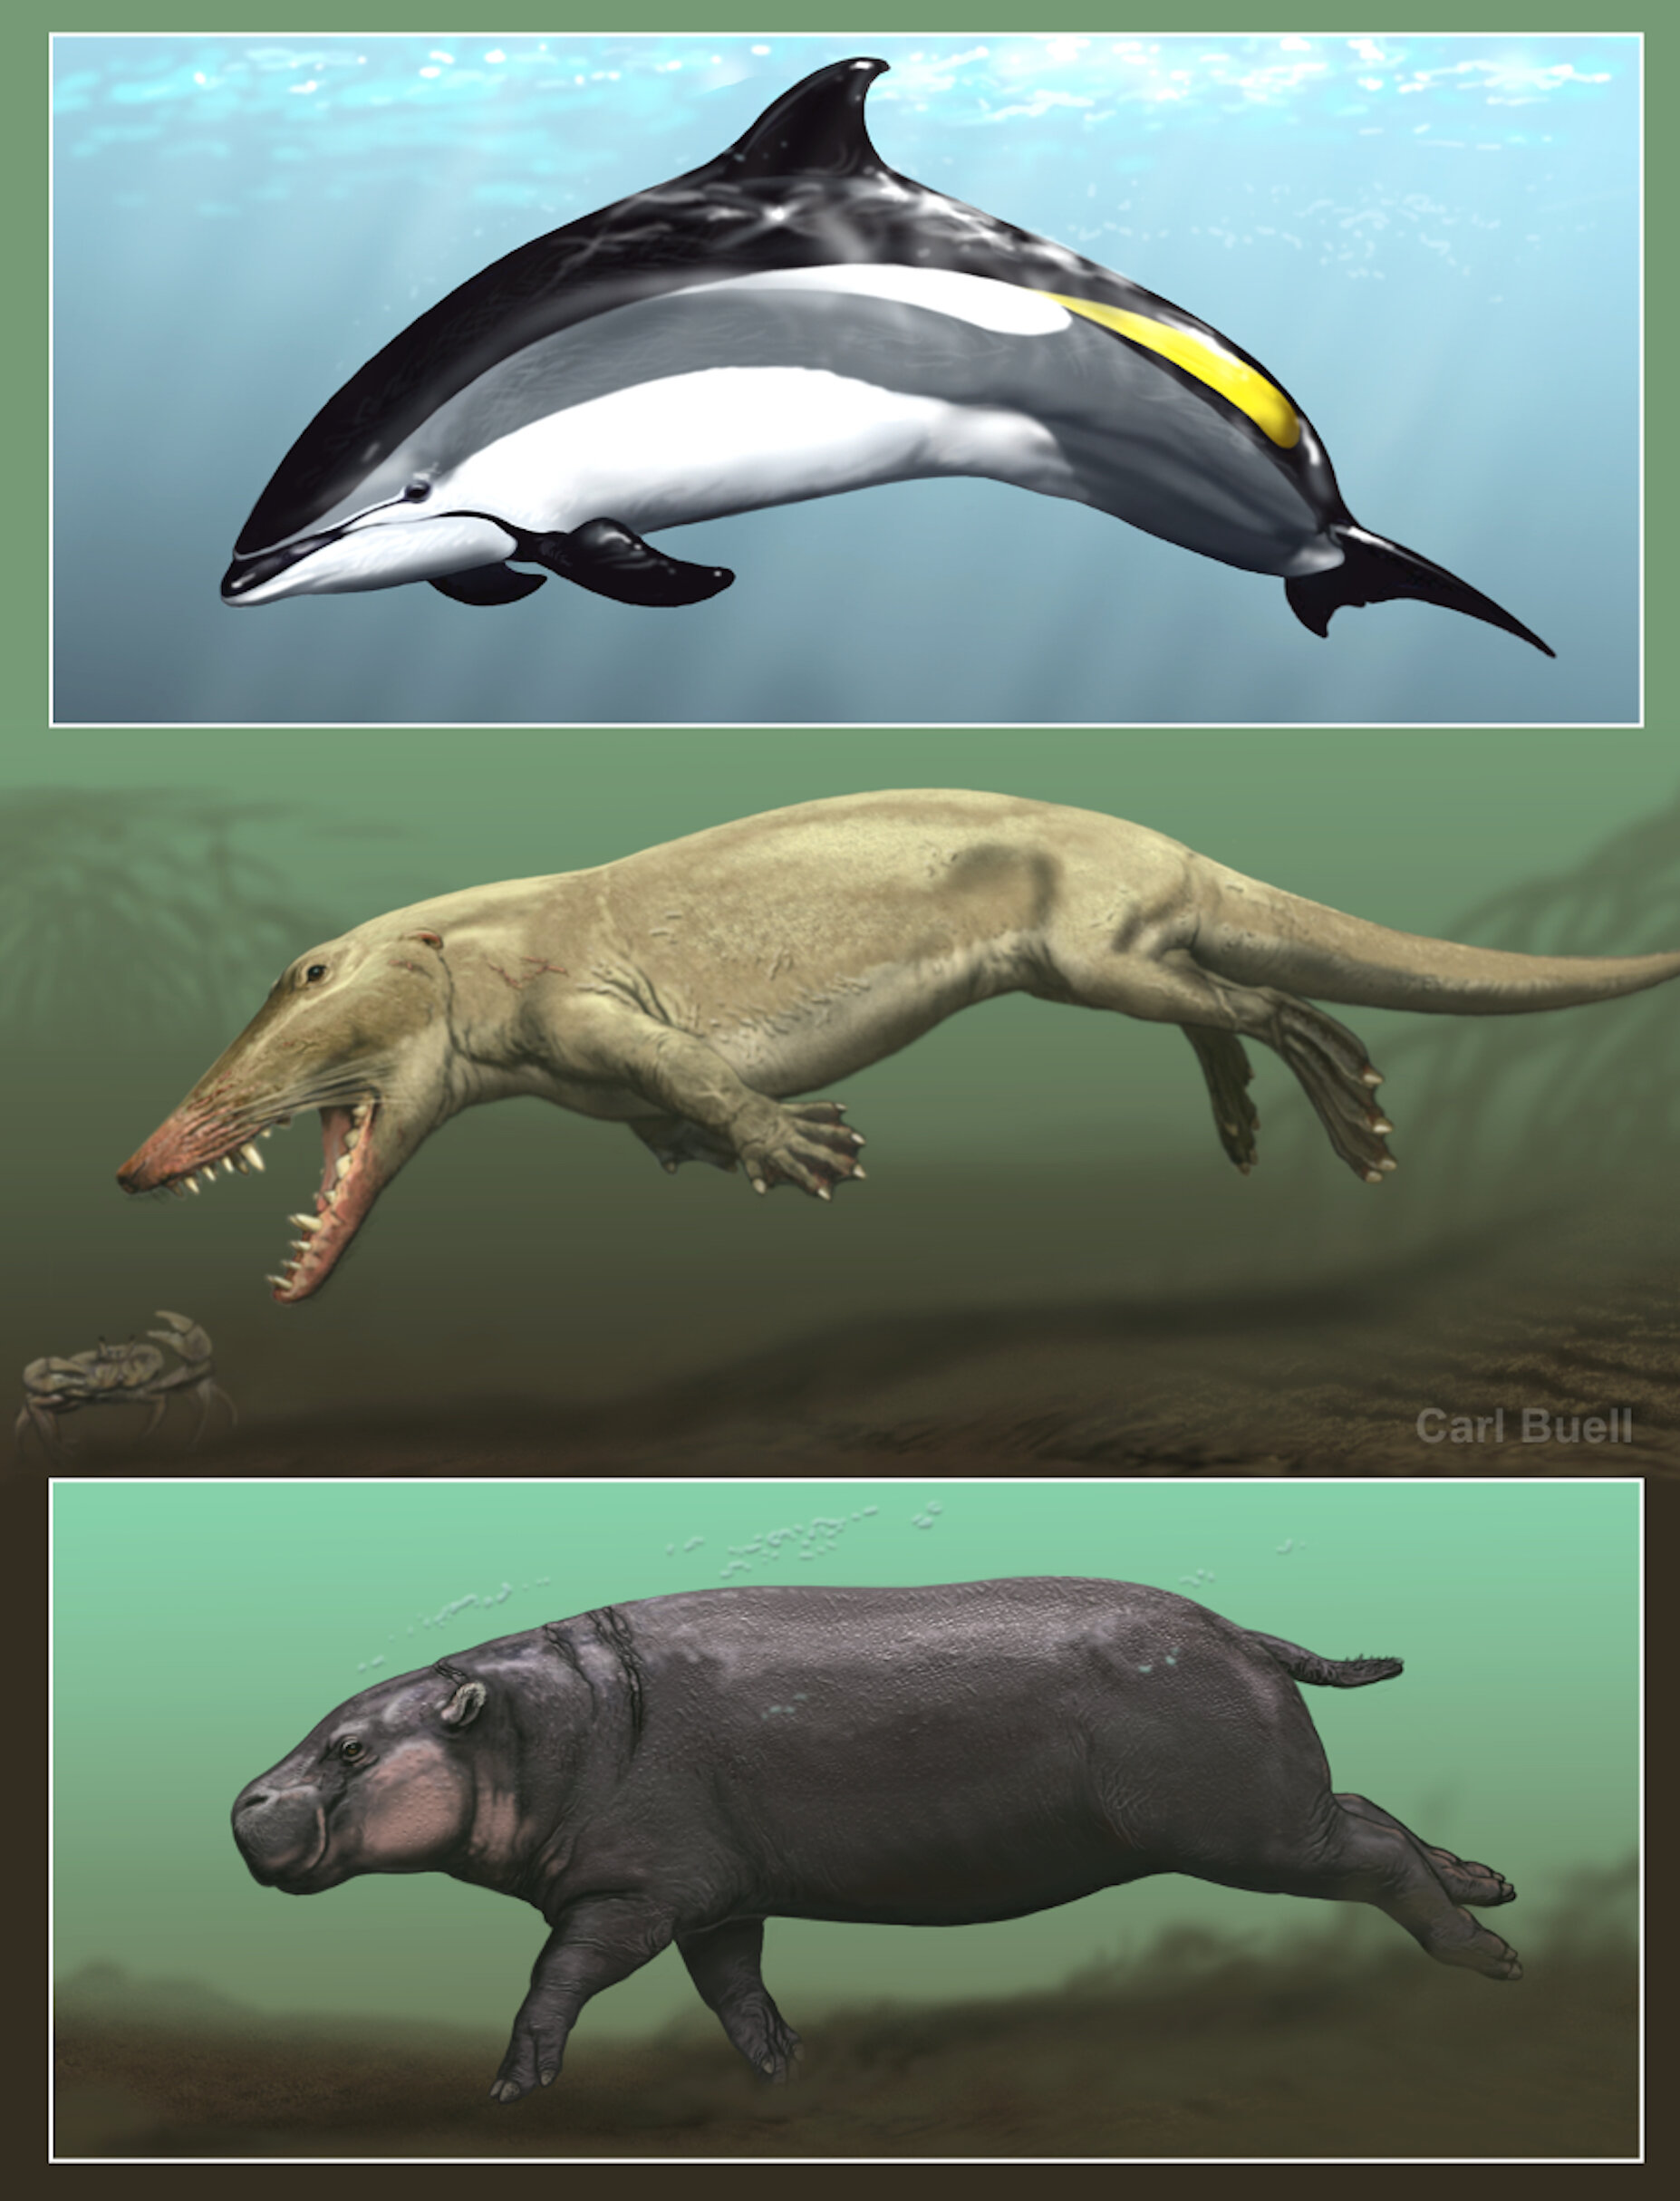 Skin deep: Aquatic skin adaptations of whales and hippos evolved independently